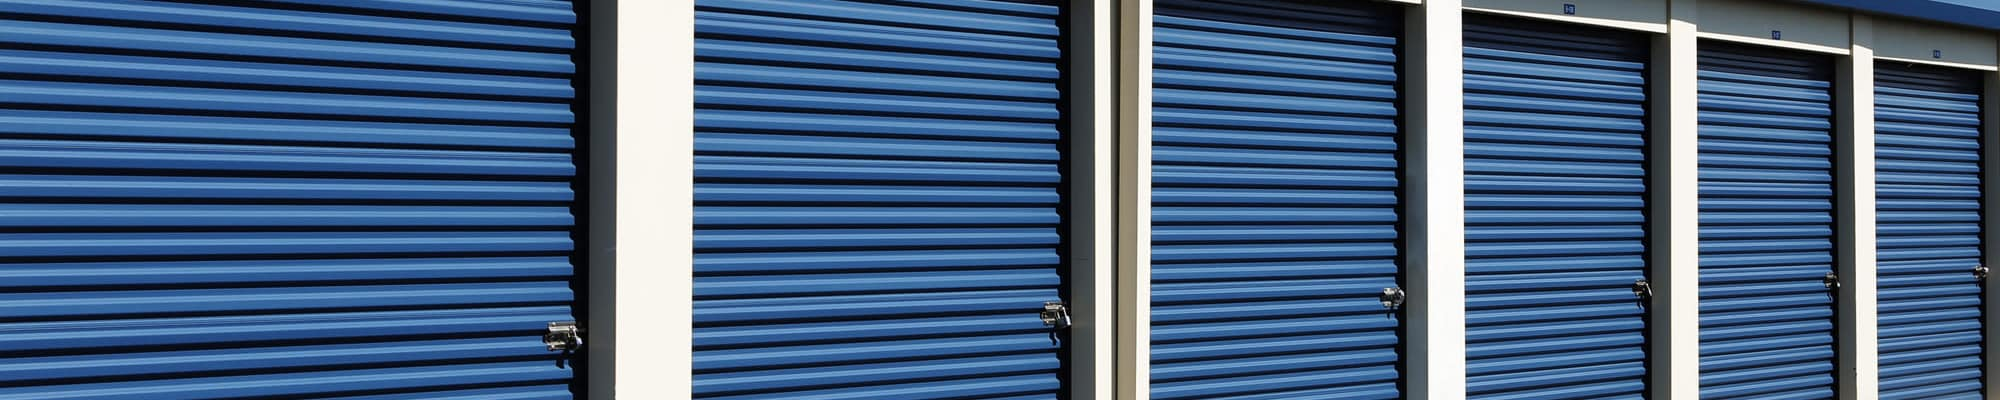 Business storage at Midgard Self Storage in Key West, Florida